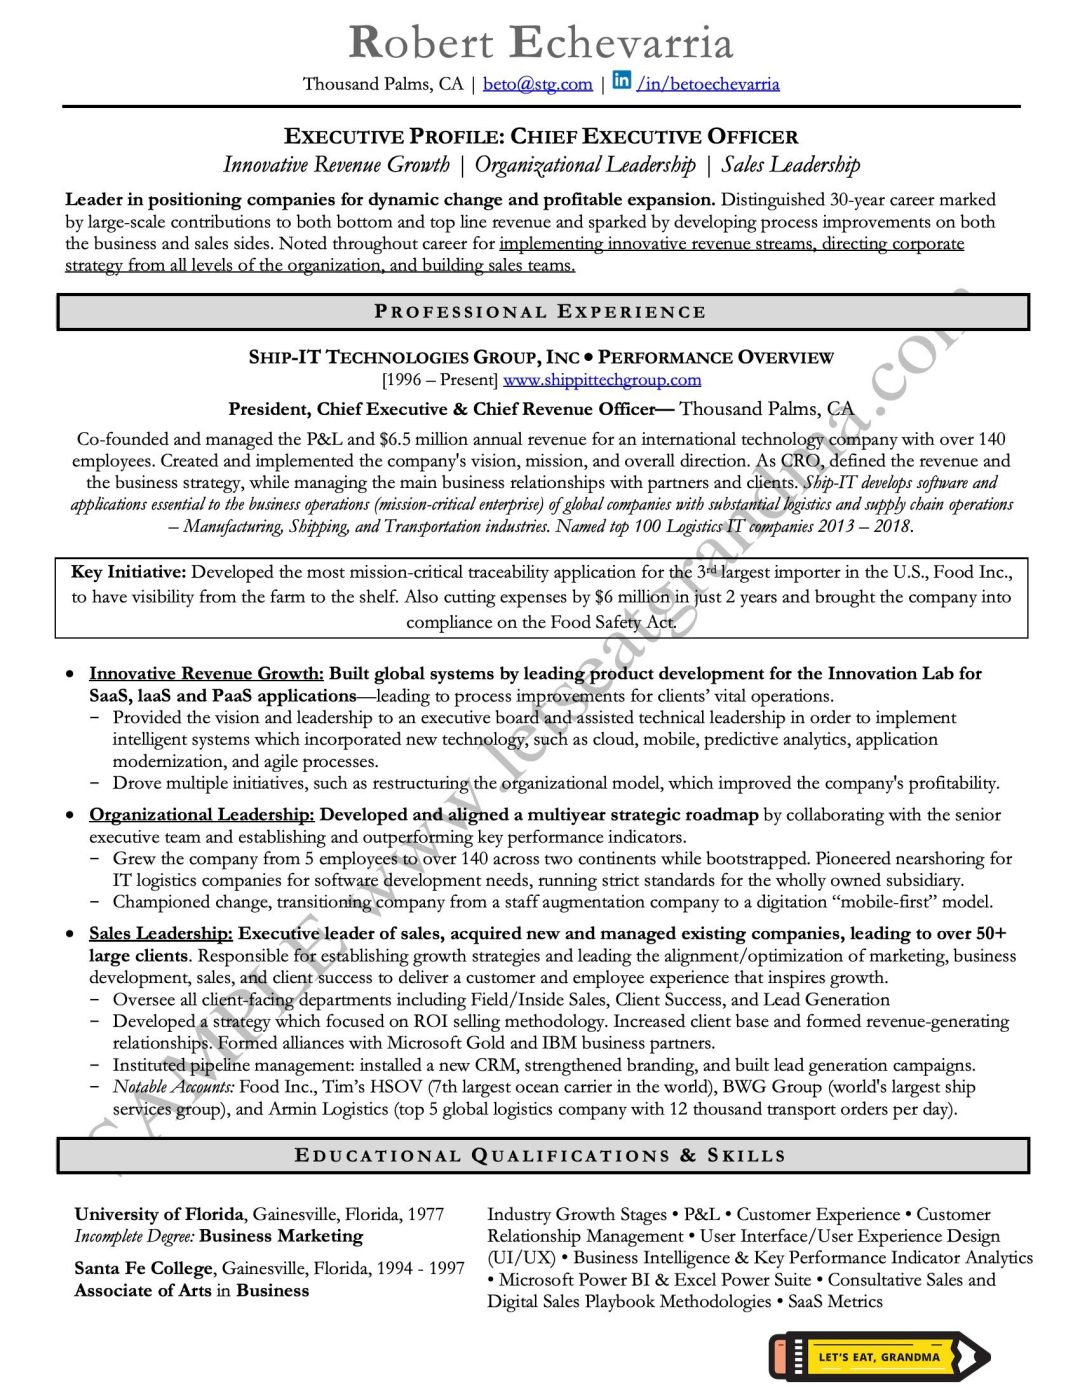 A sample of a CEO resume rewritten by Let's Eat, Grandma, one of 2 executive resume examples showcased in the article.